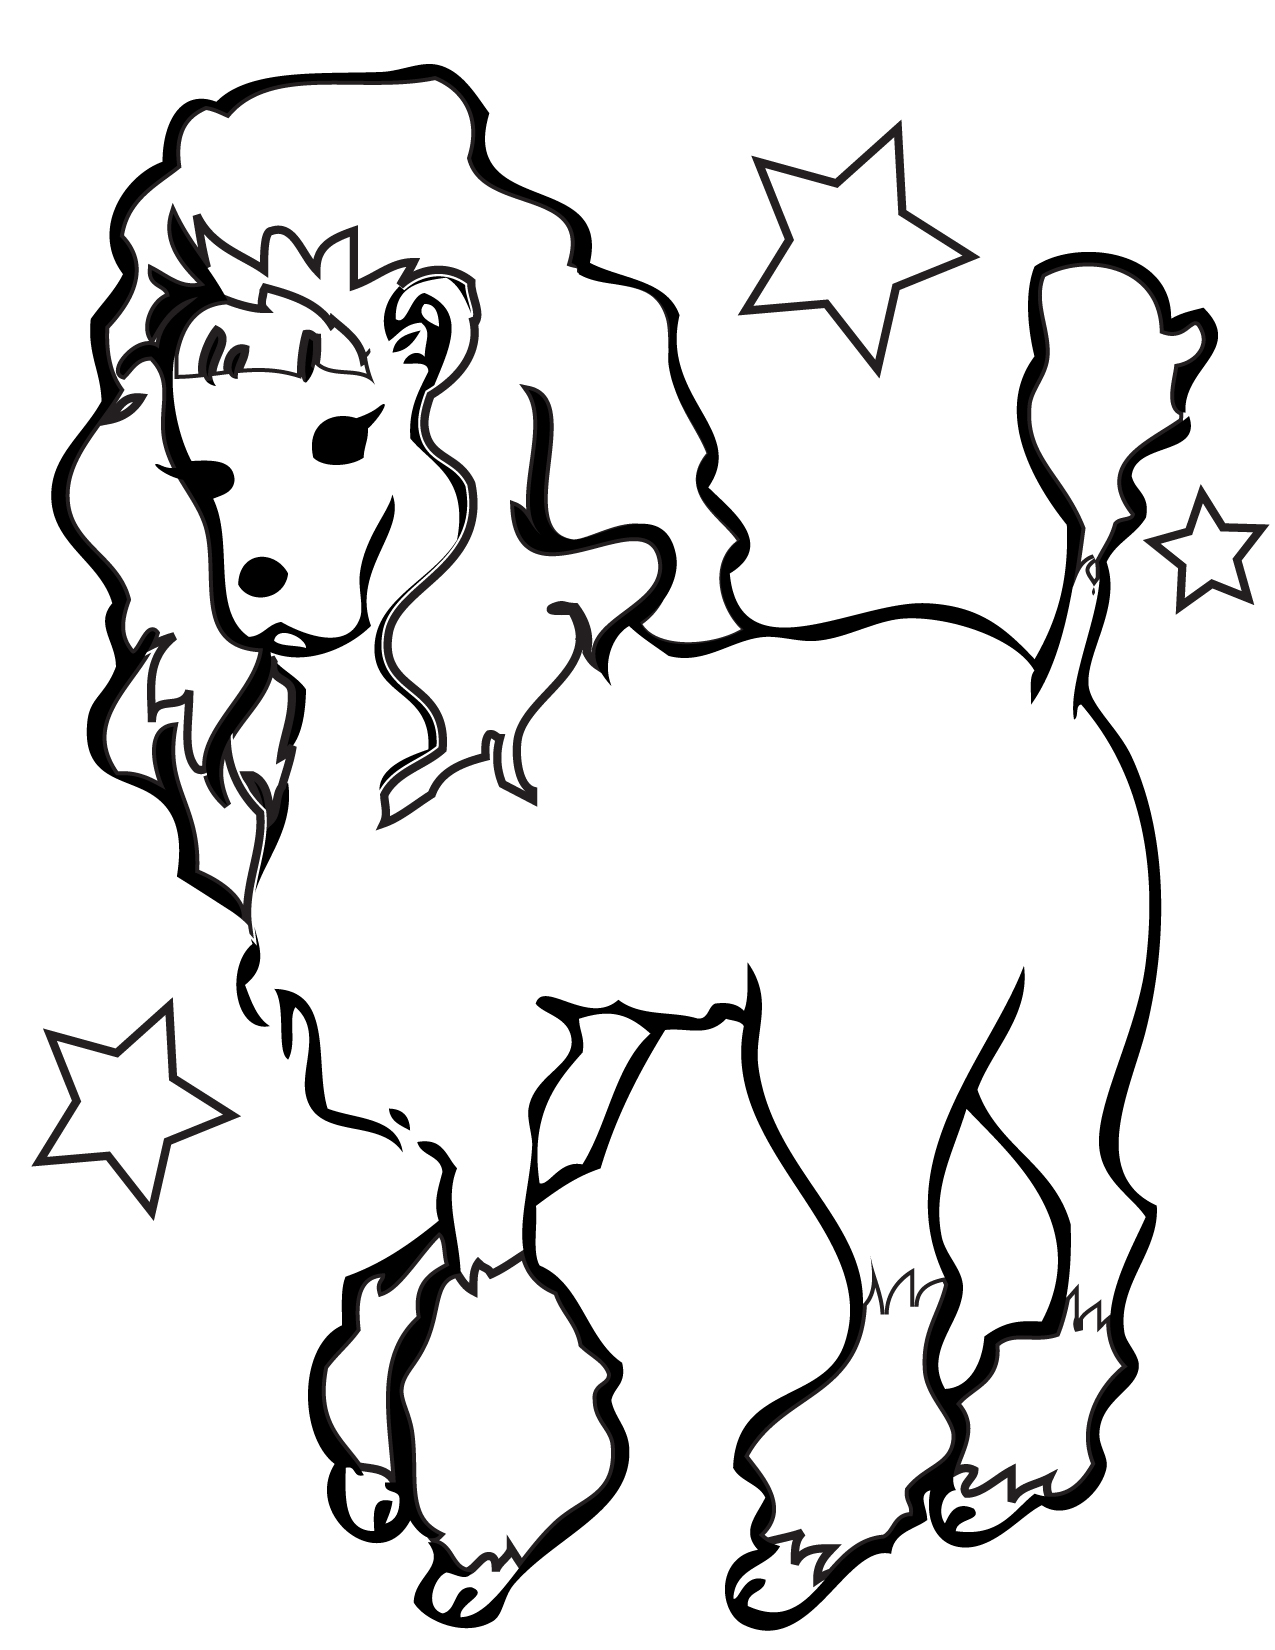 Co co coloring sheets free for kids - Co Co Coloring Pictures Dog Drawing Pictures Of Dogs Clipart Best